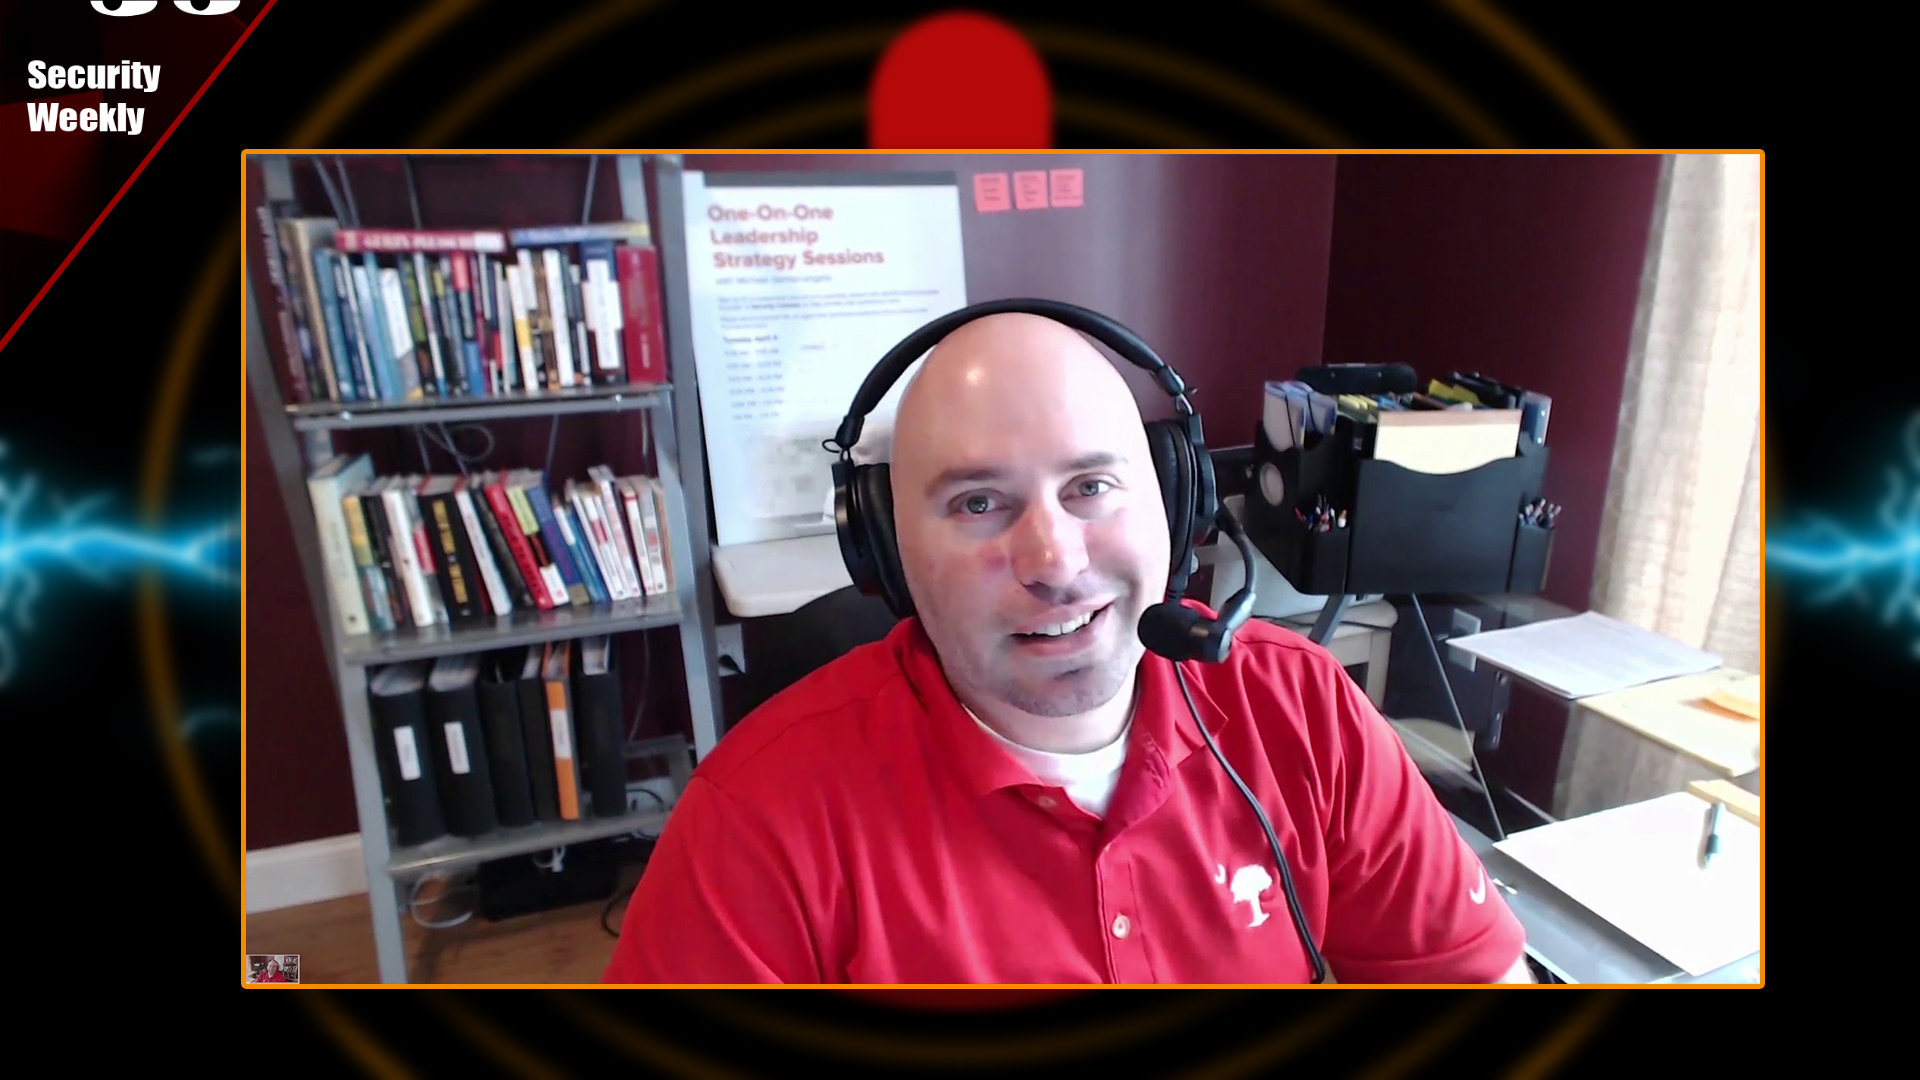 Artwork for Startup Articles and Discussion - Startup Security Weekly #40